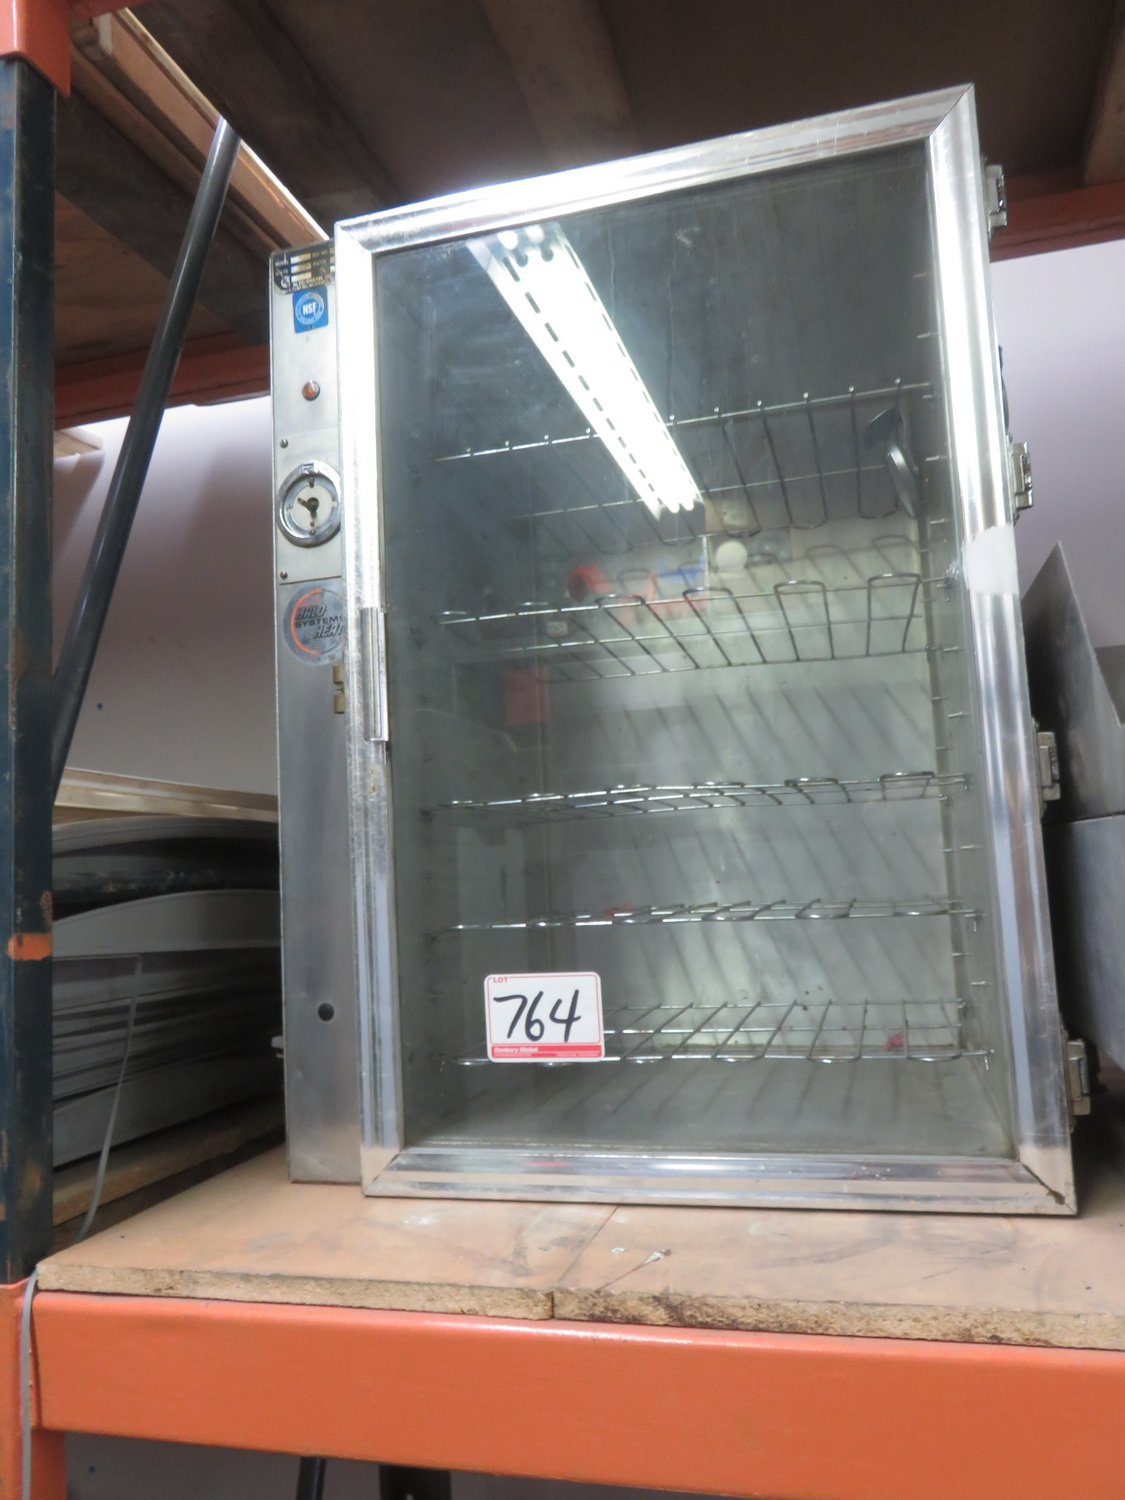 Lot 764 - LOT - ACTO-SHAM ELECTRIC HEATING CABINET 2 UNITS